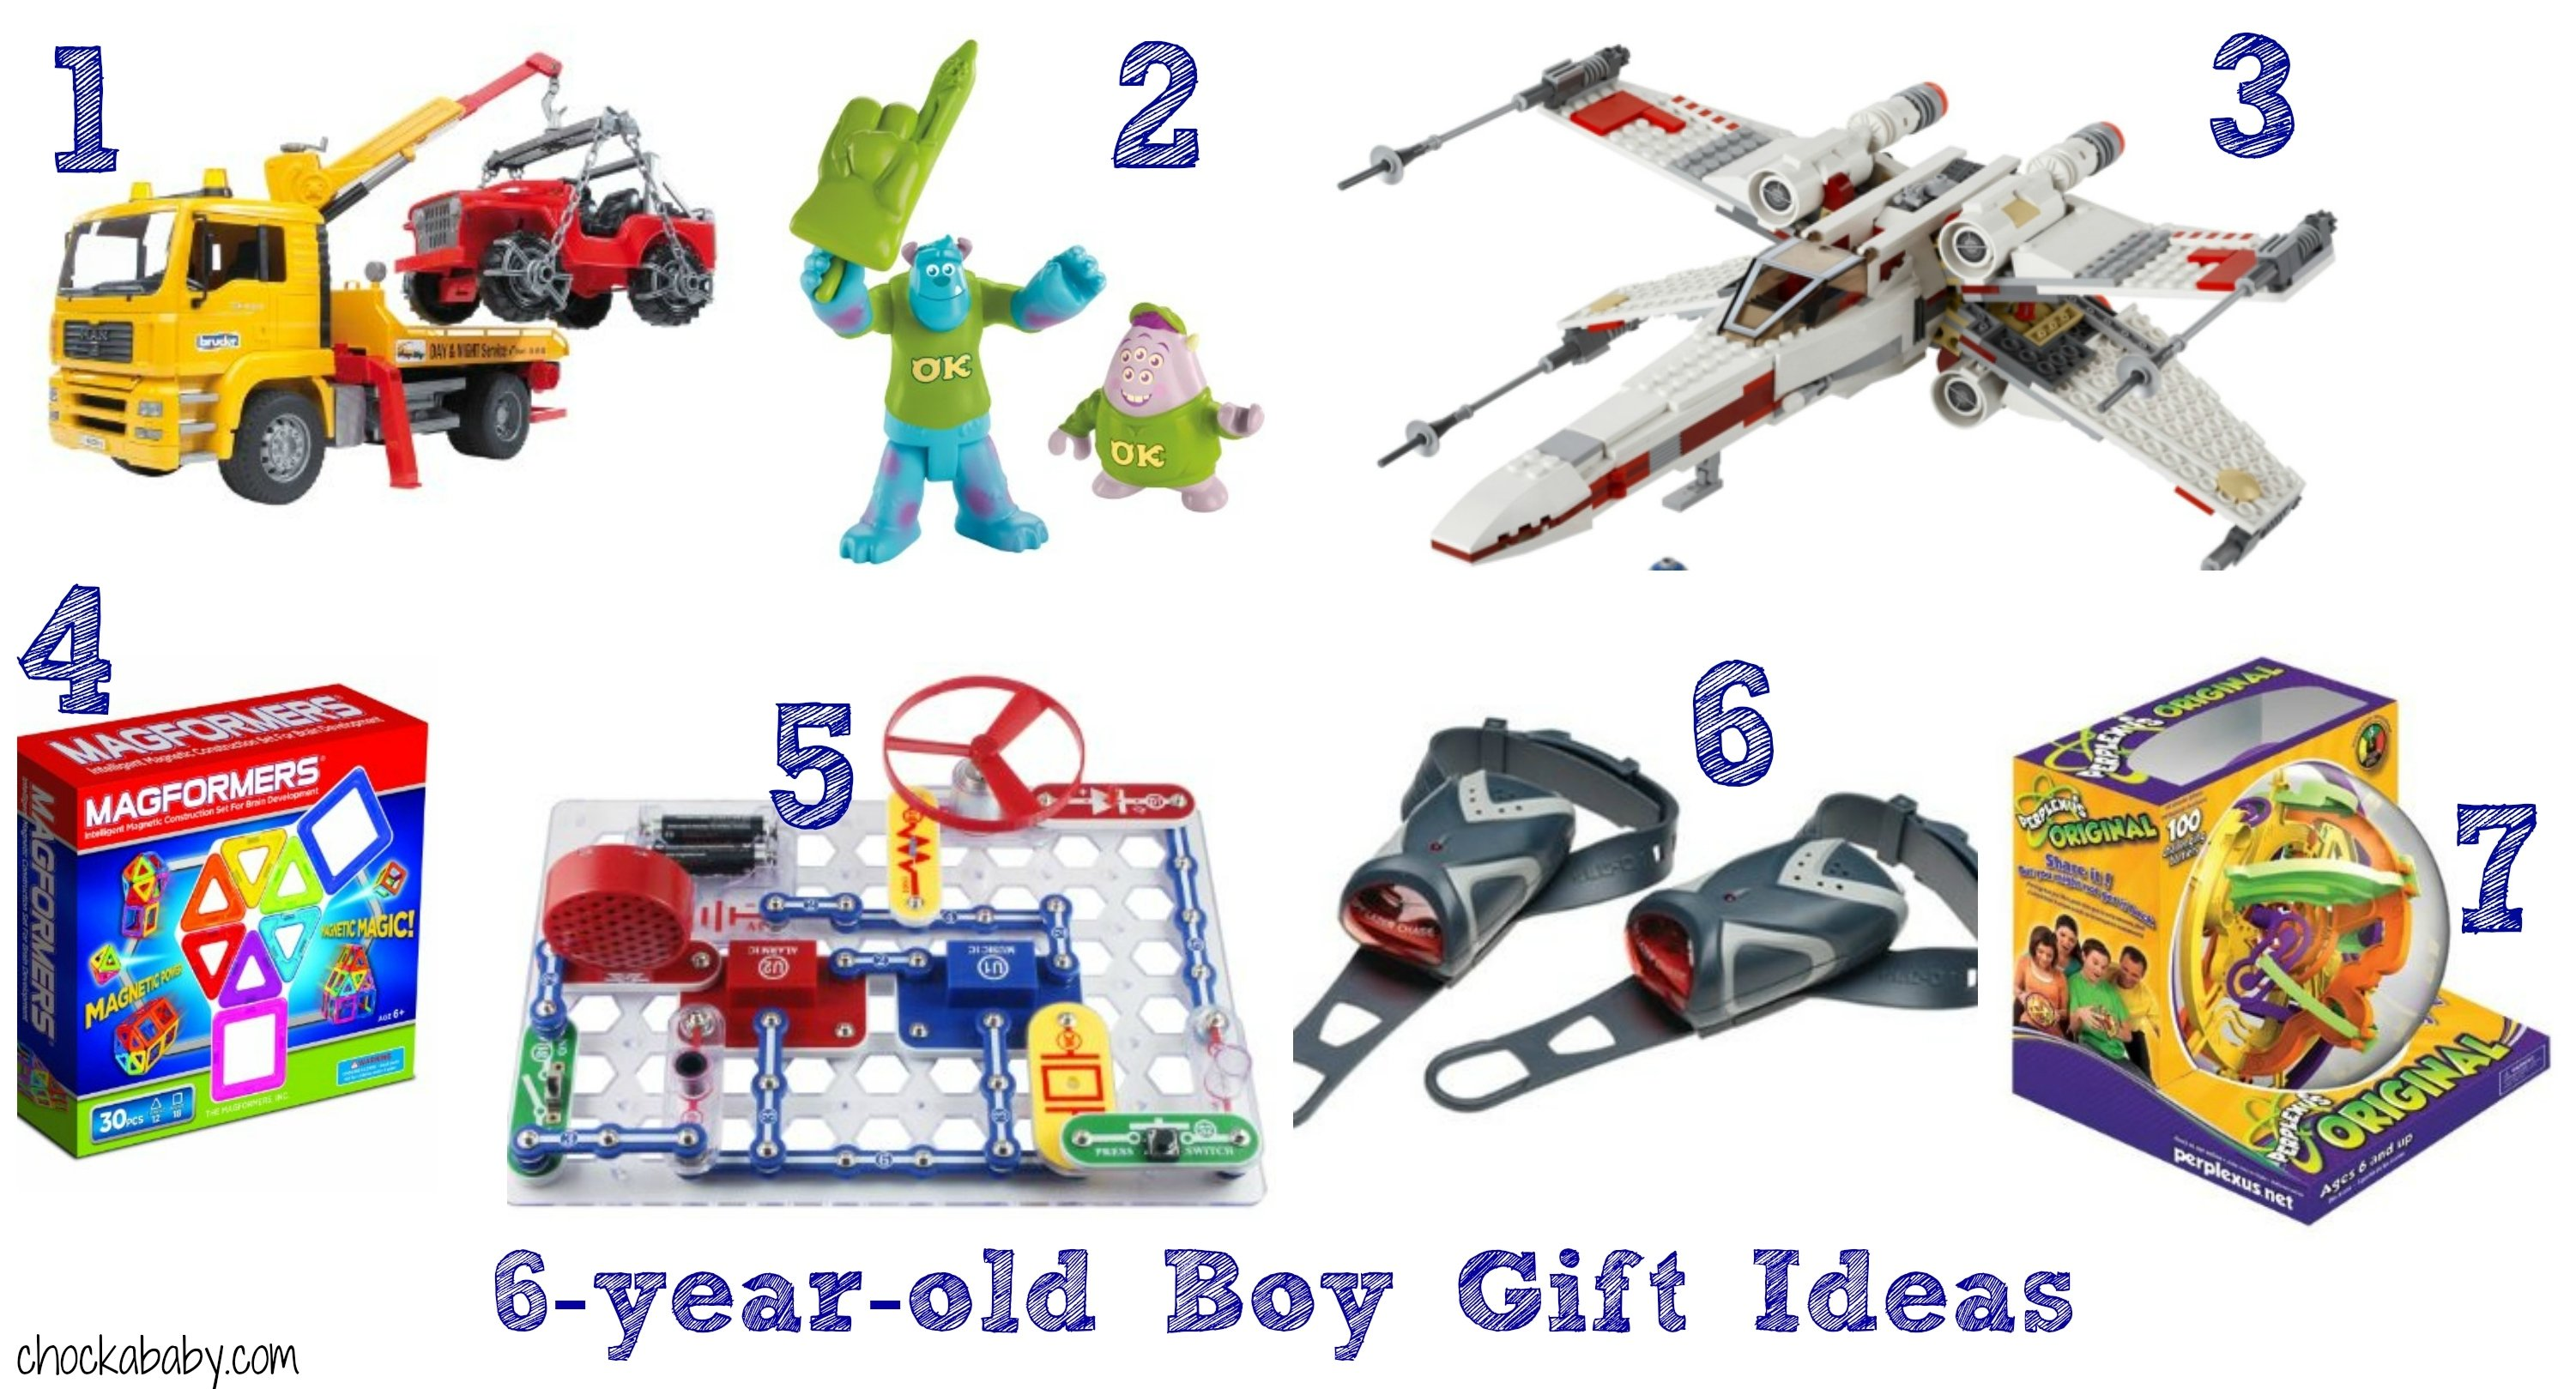 10 great christmas gift ideas for 10 year old boys 6 year old christmas gift ideas - Christmas Gift Ideas 10 Year Old Boy